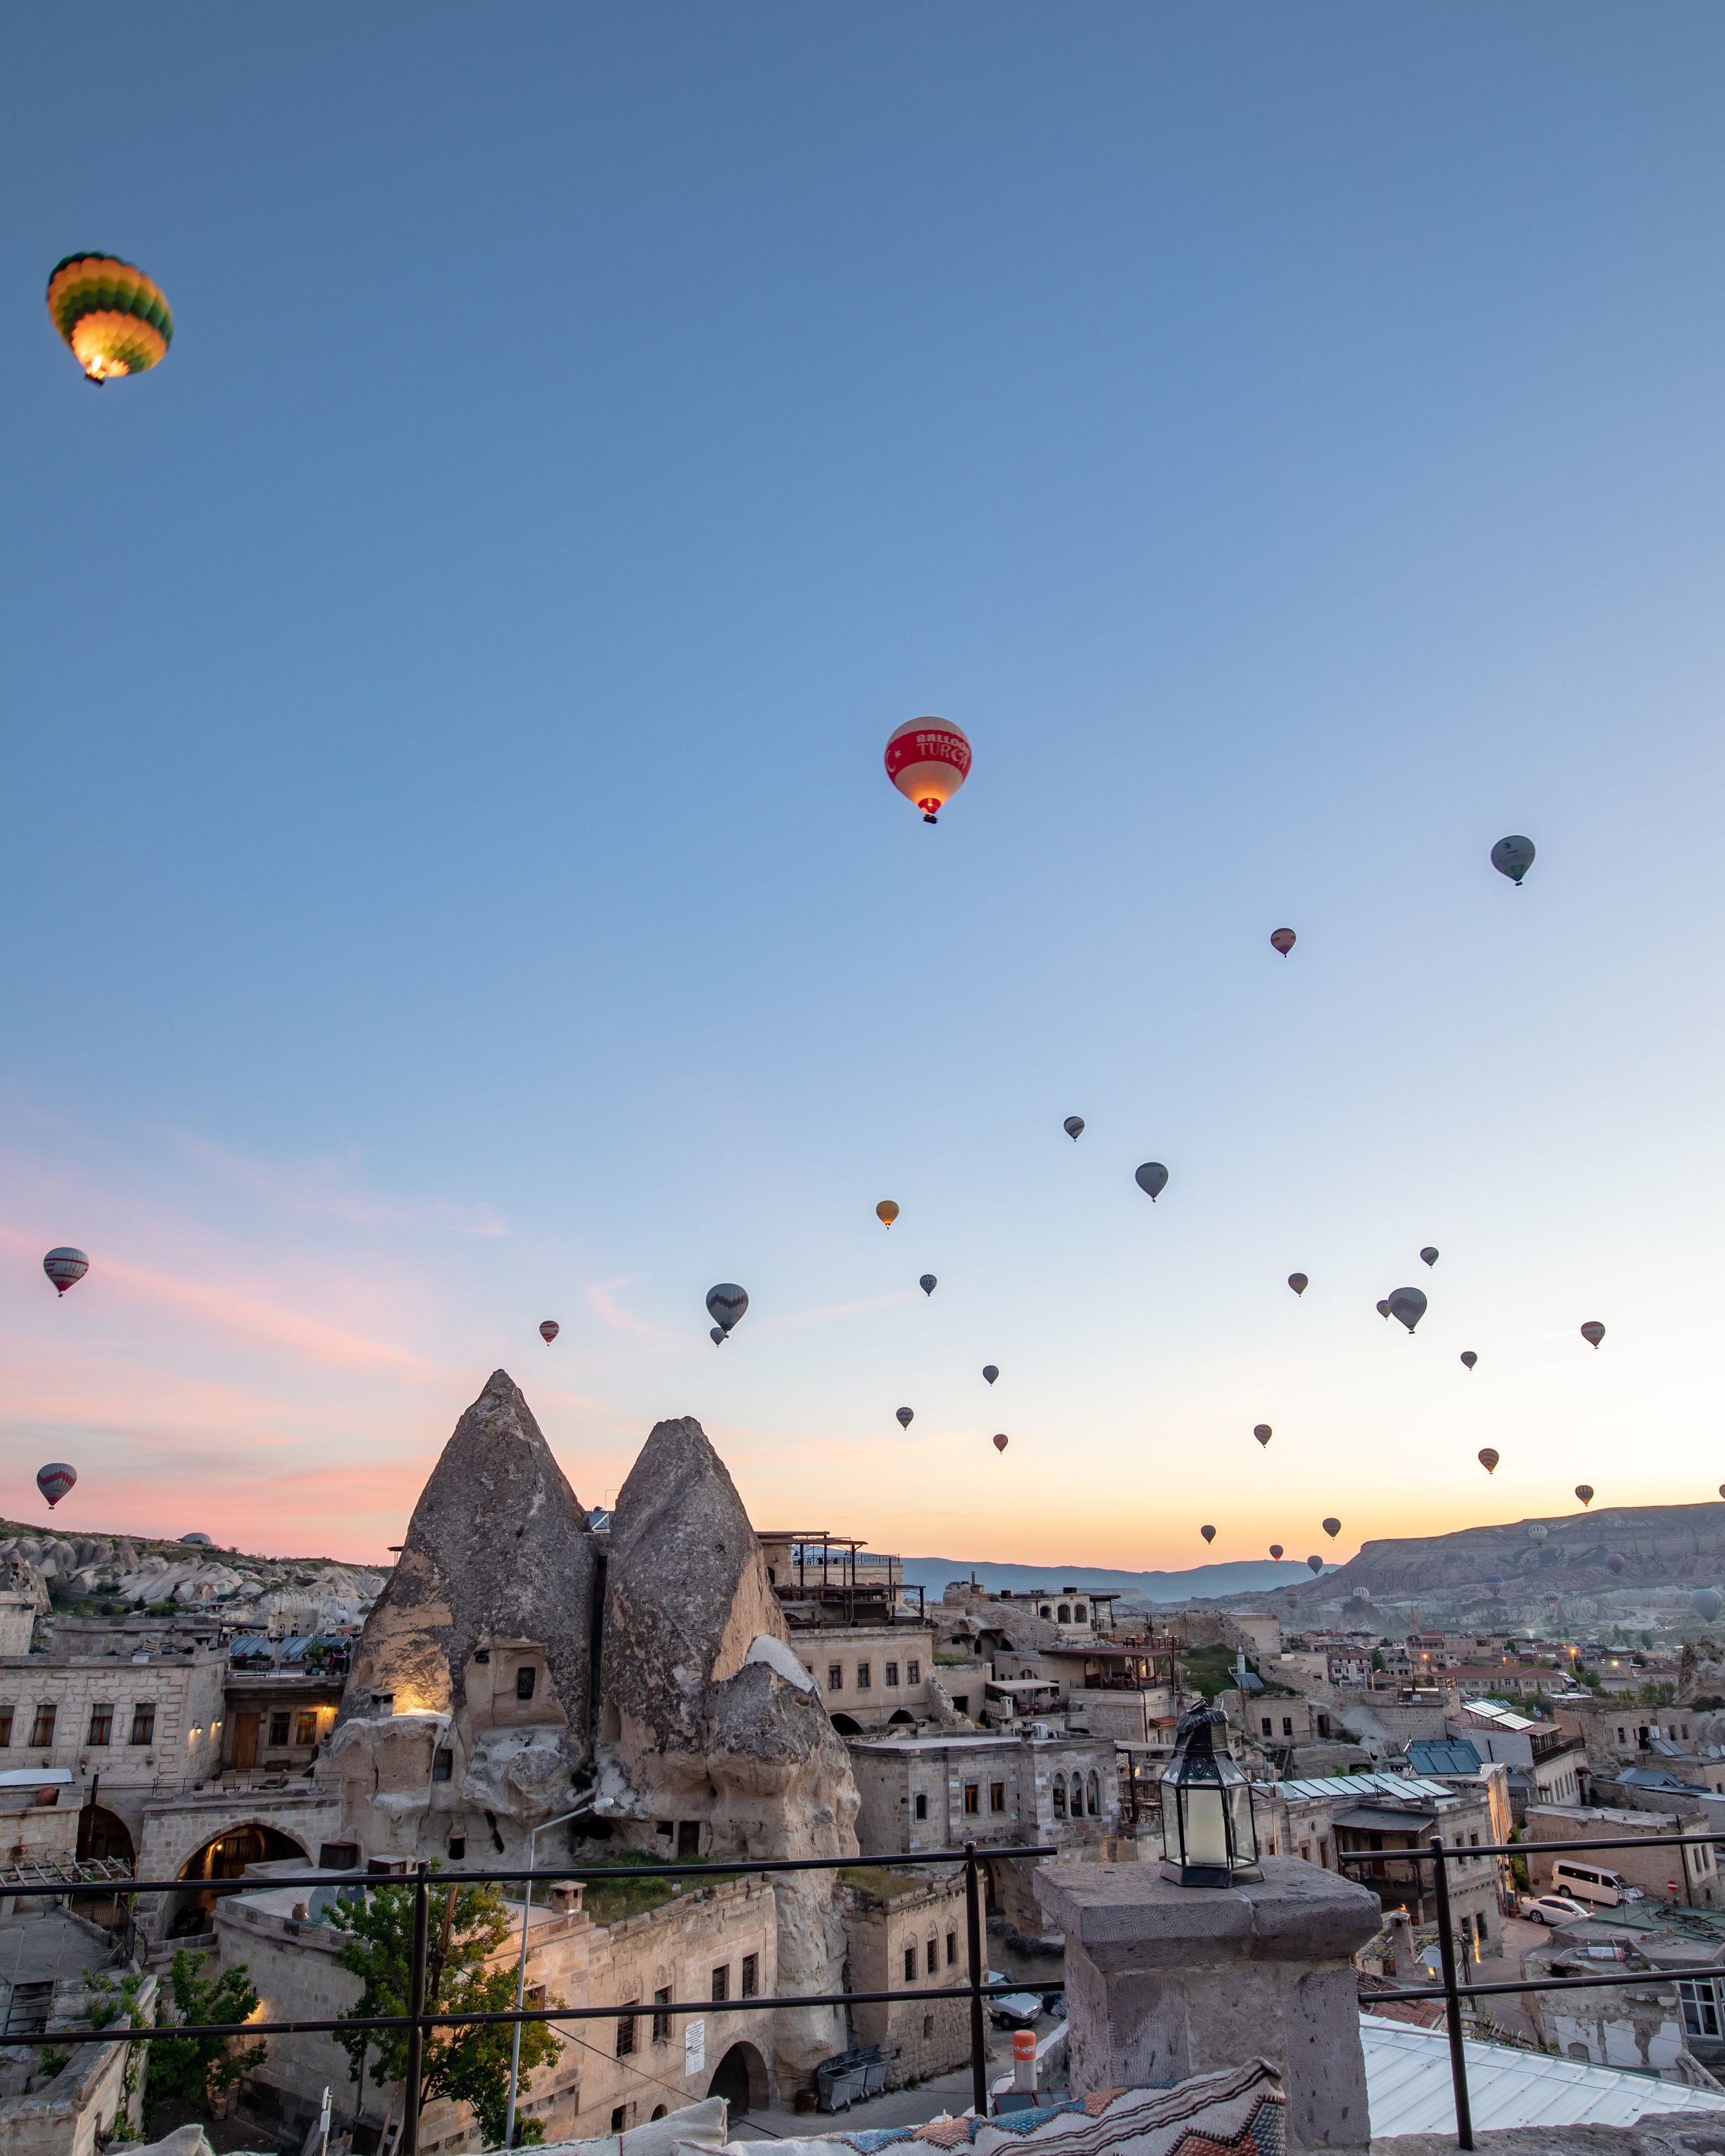 Sunrise spots in Cappadocia - From a cave hotel terrace